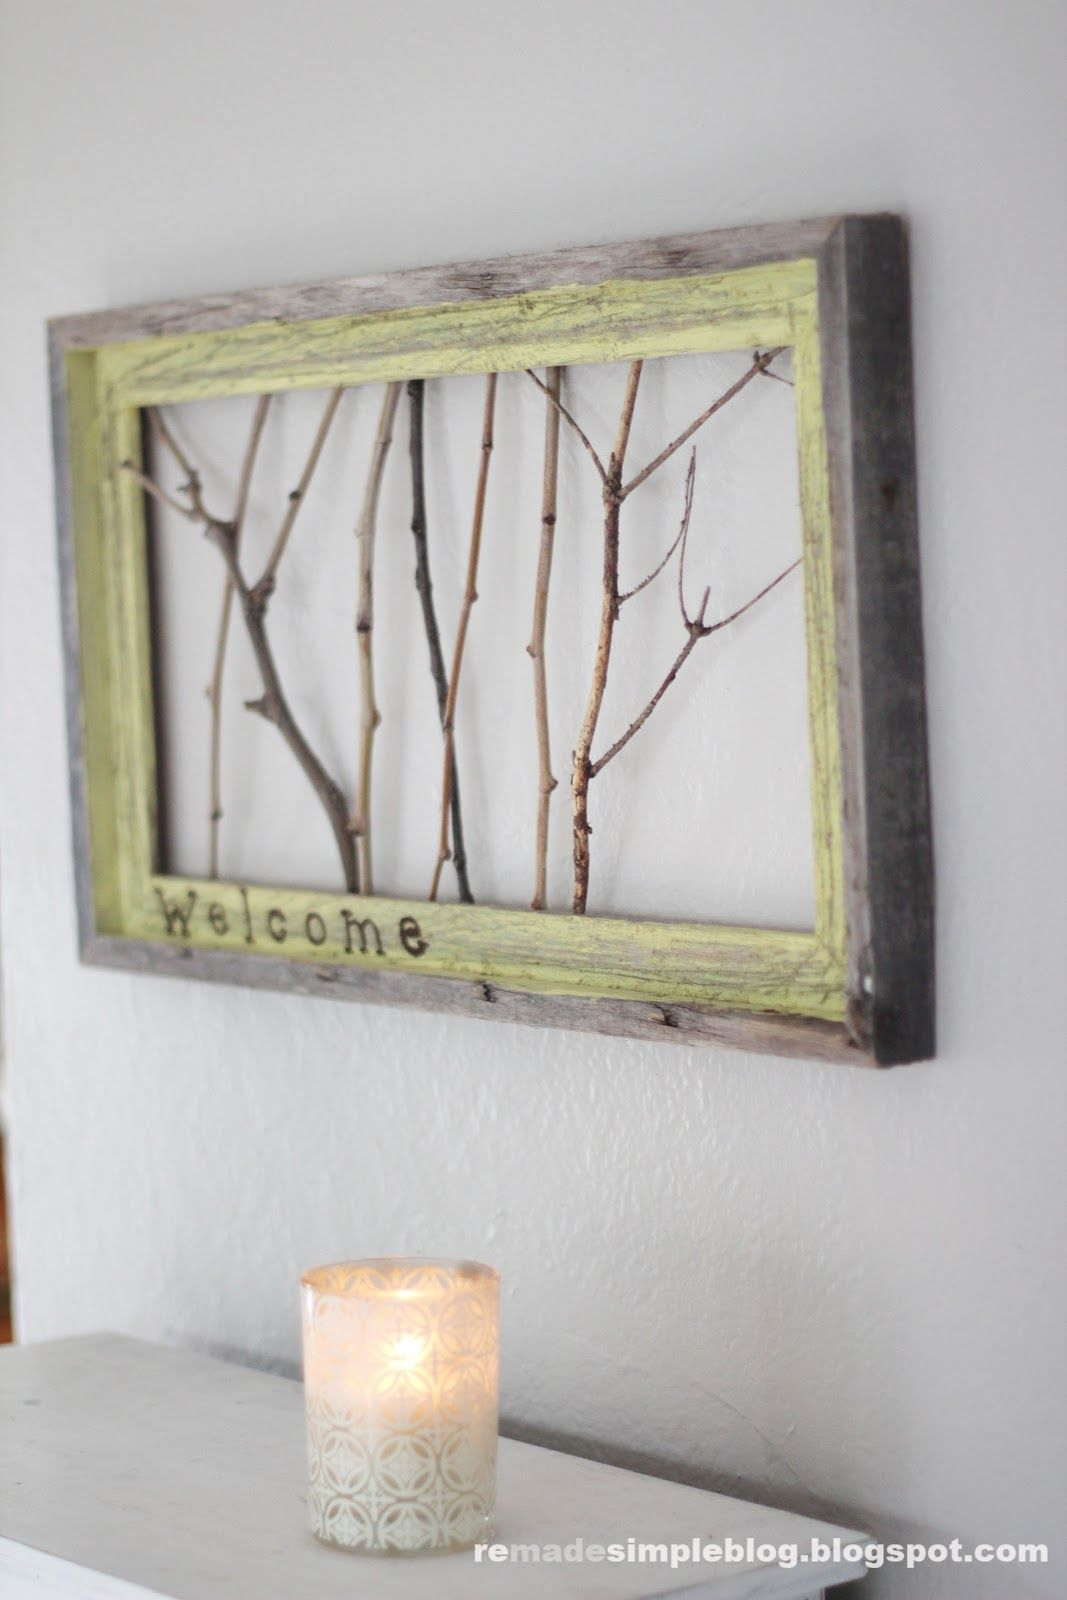 ReMadeSimple: Framed Sticks Sign I Think I Want Mine To Say Winter.